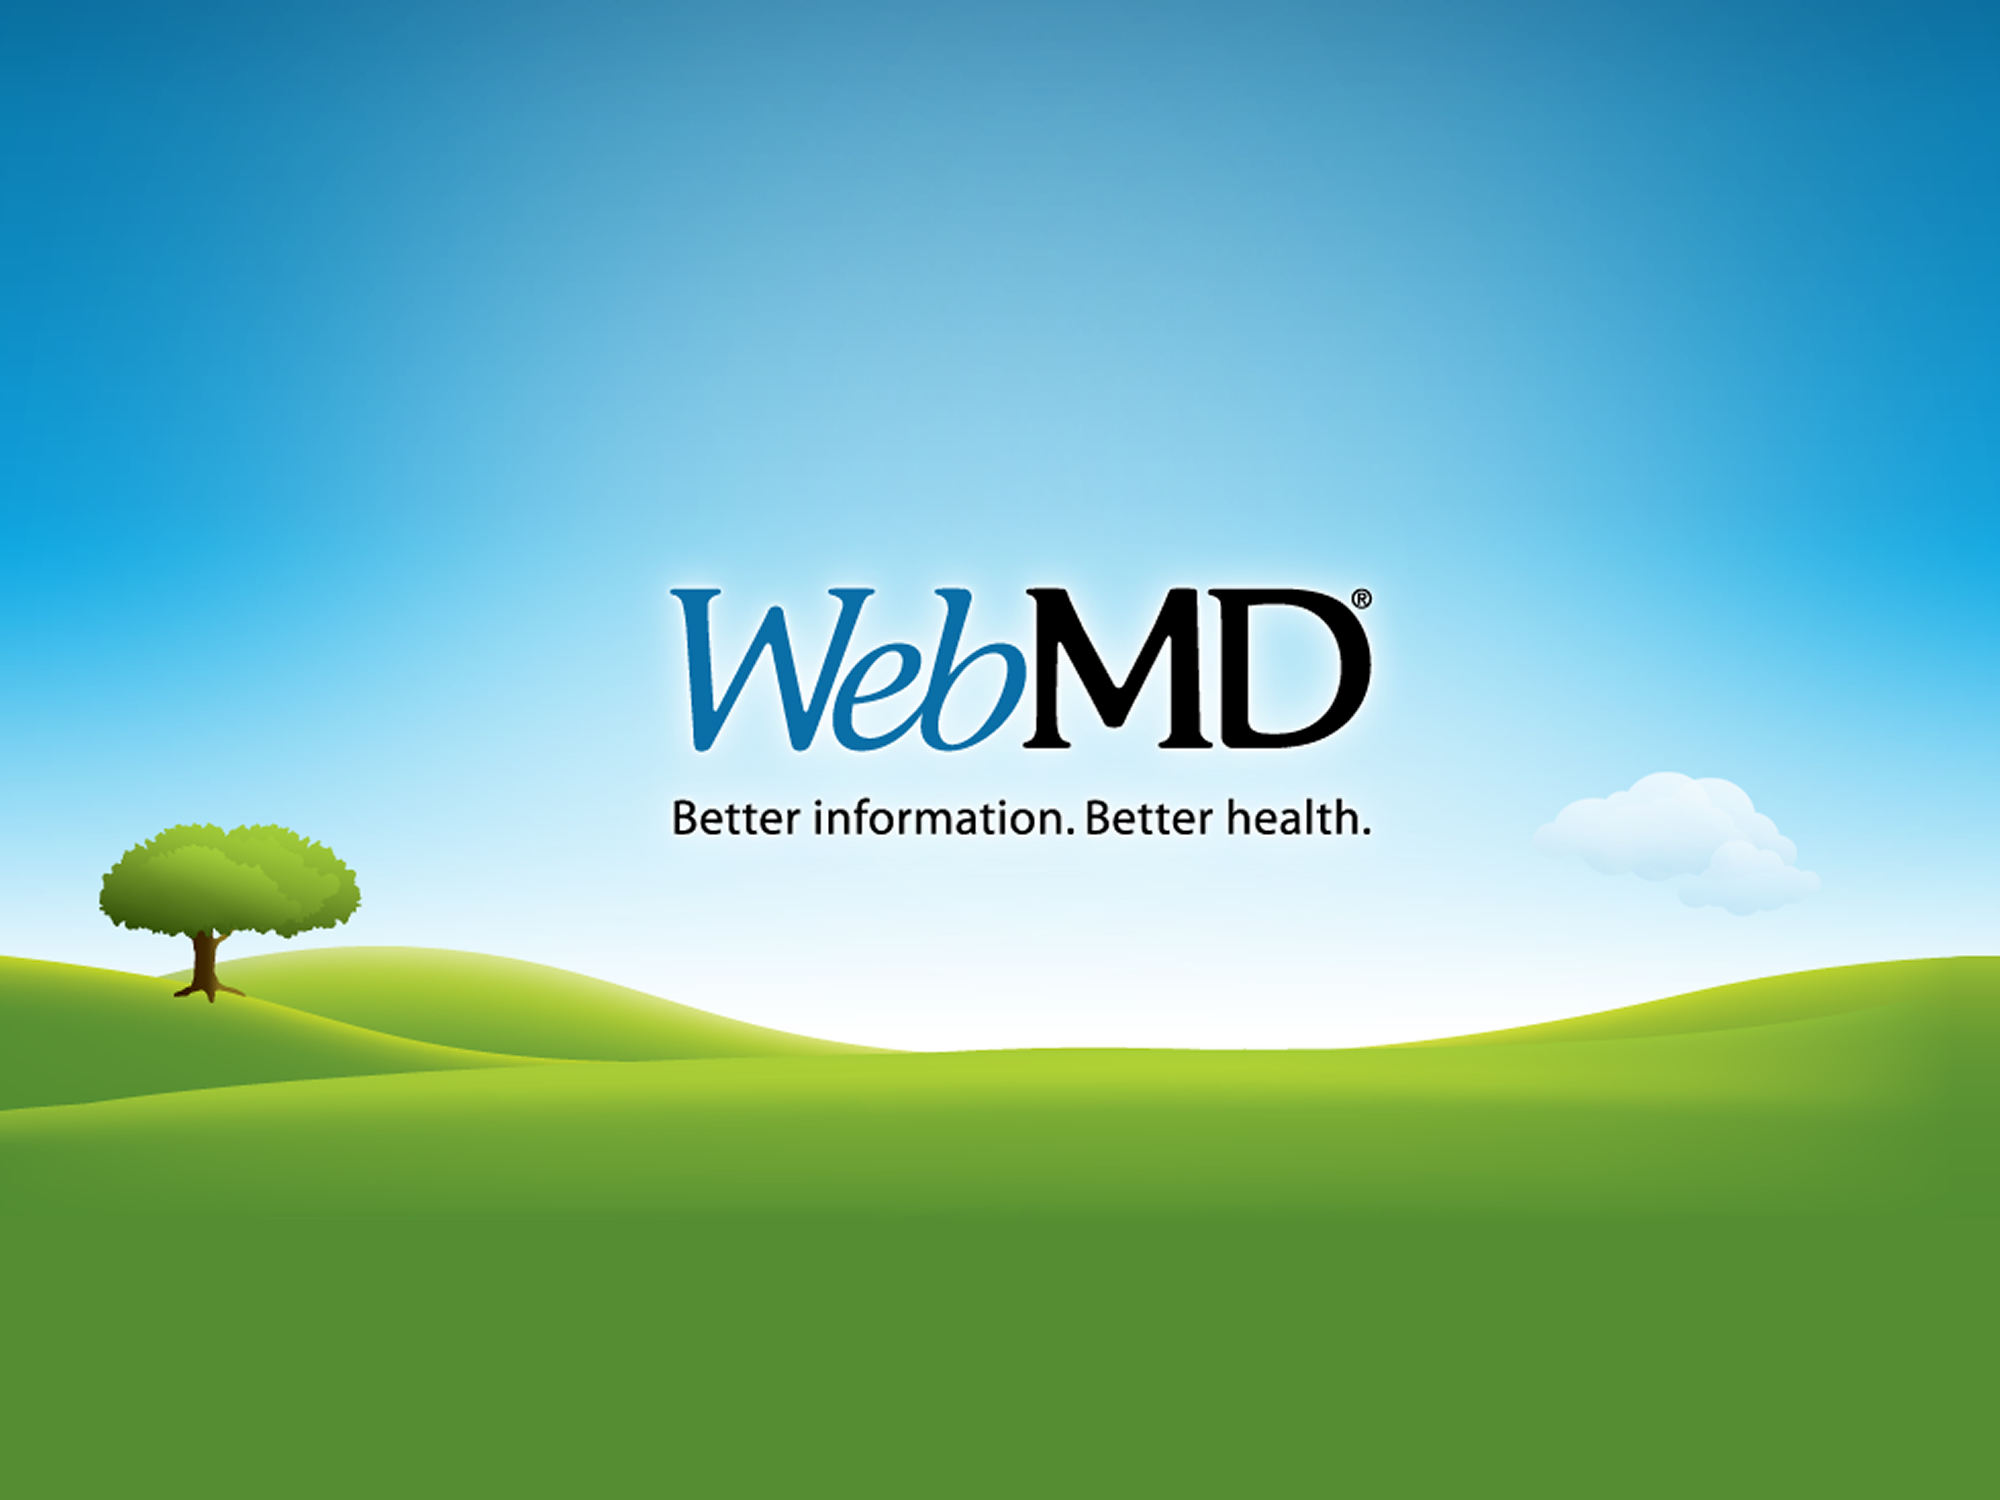 WebMD & BlueCross BlueShield Make eBooks Accessible to Expecting Mothers